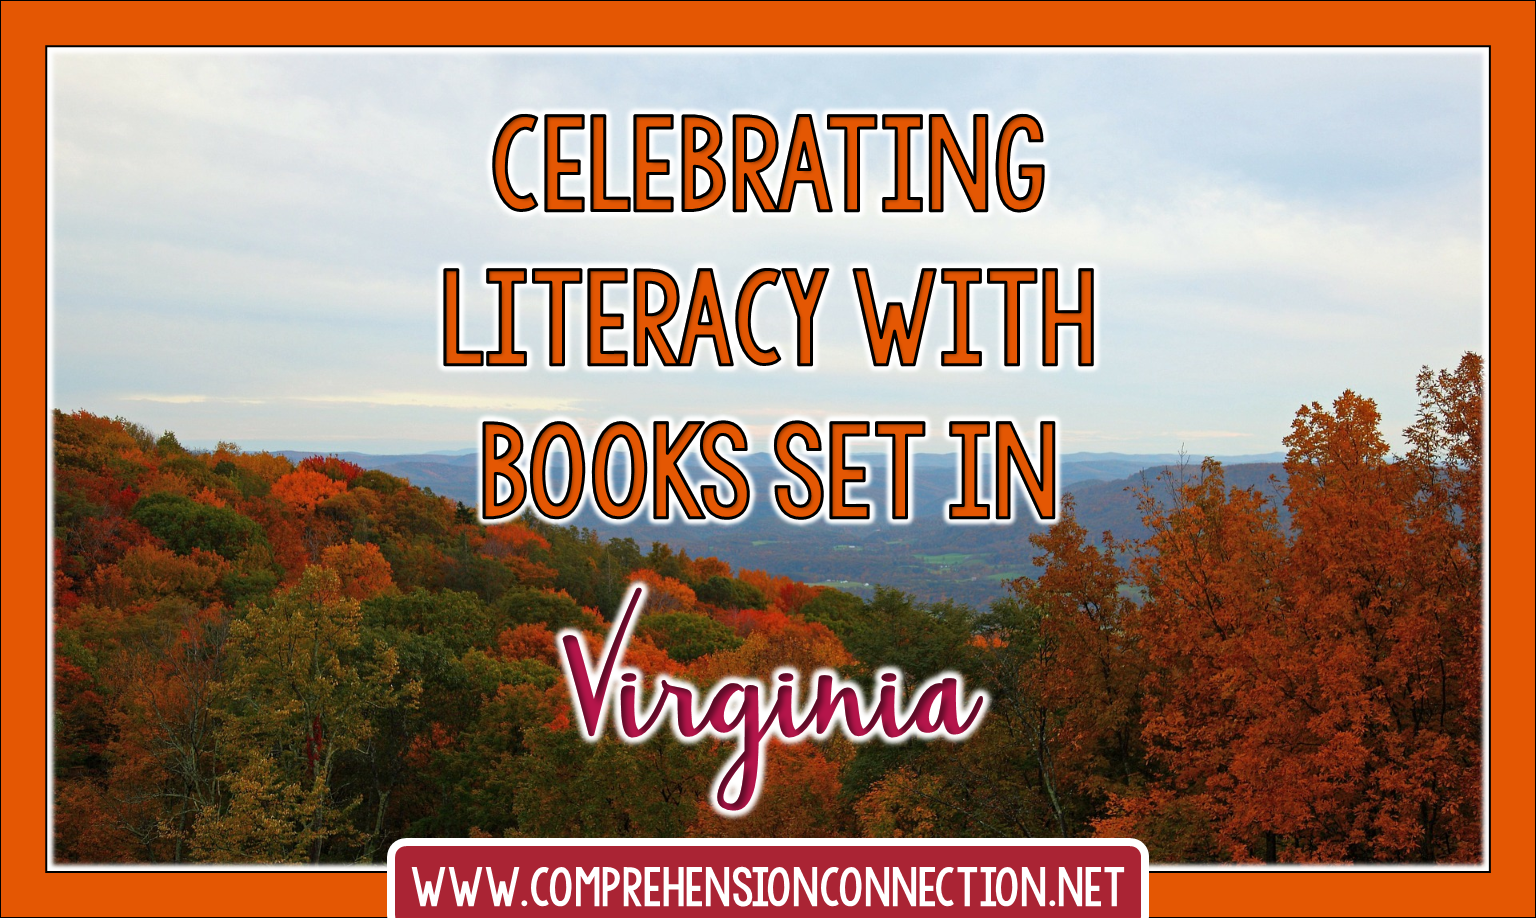 Celebrate literacy with books from Virginia and teach a little Virginia history too with this ideas.